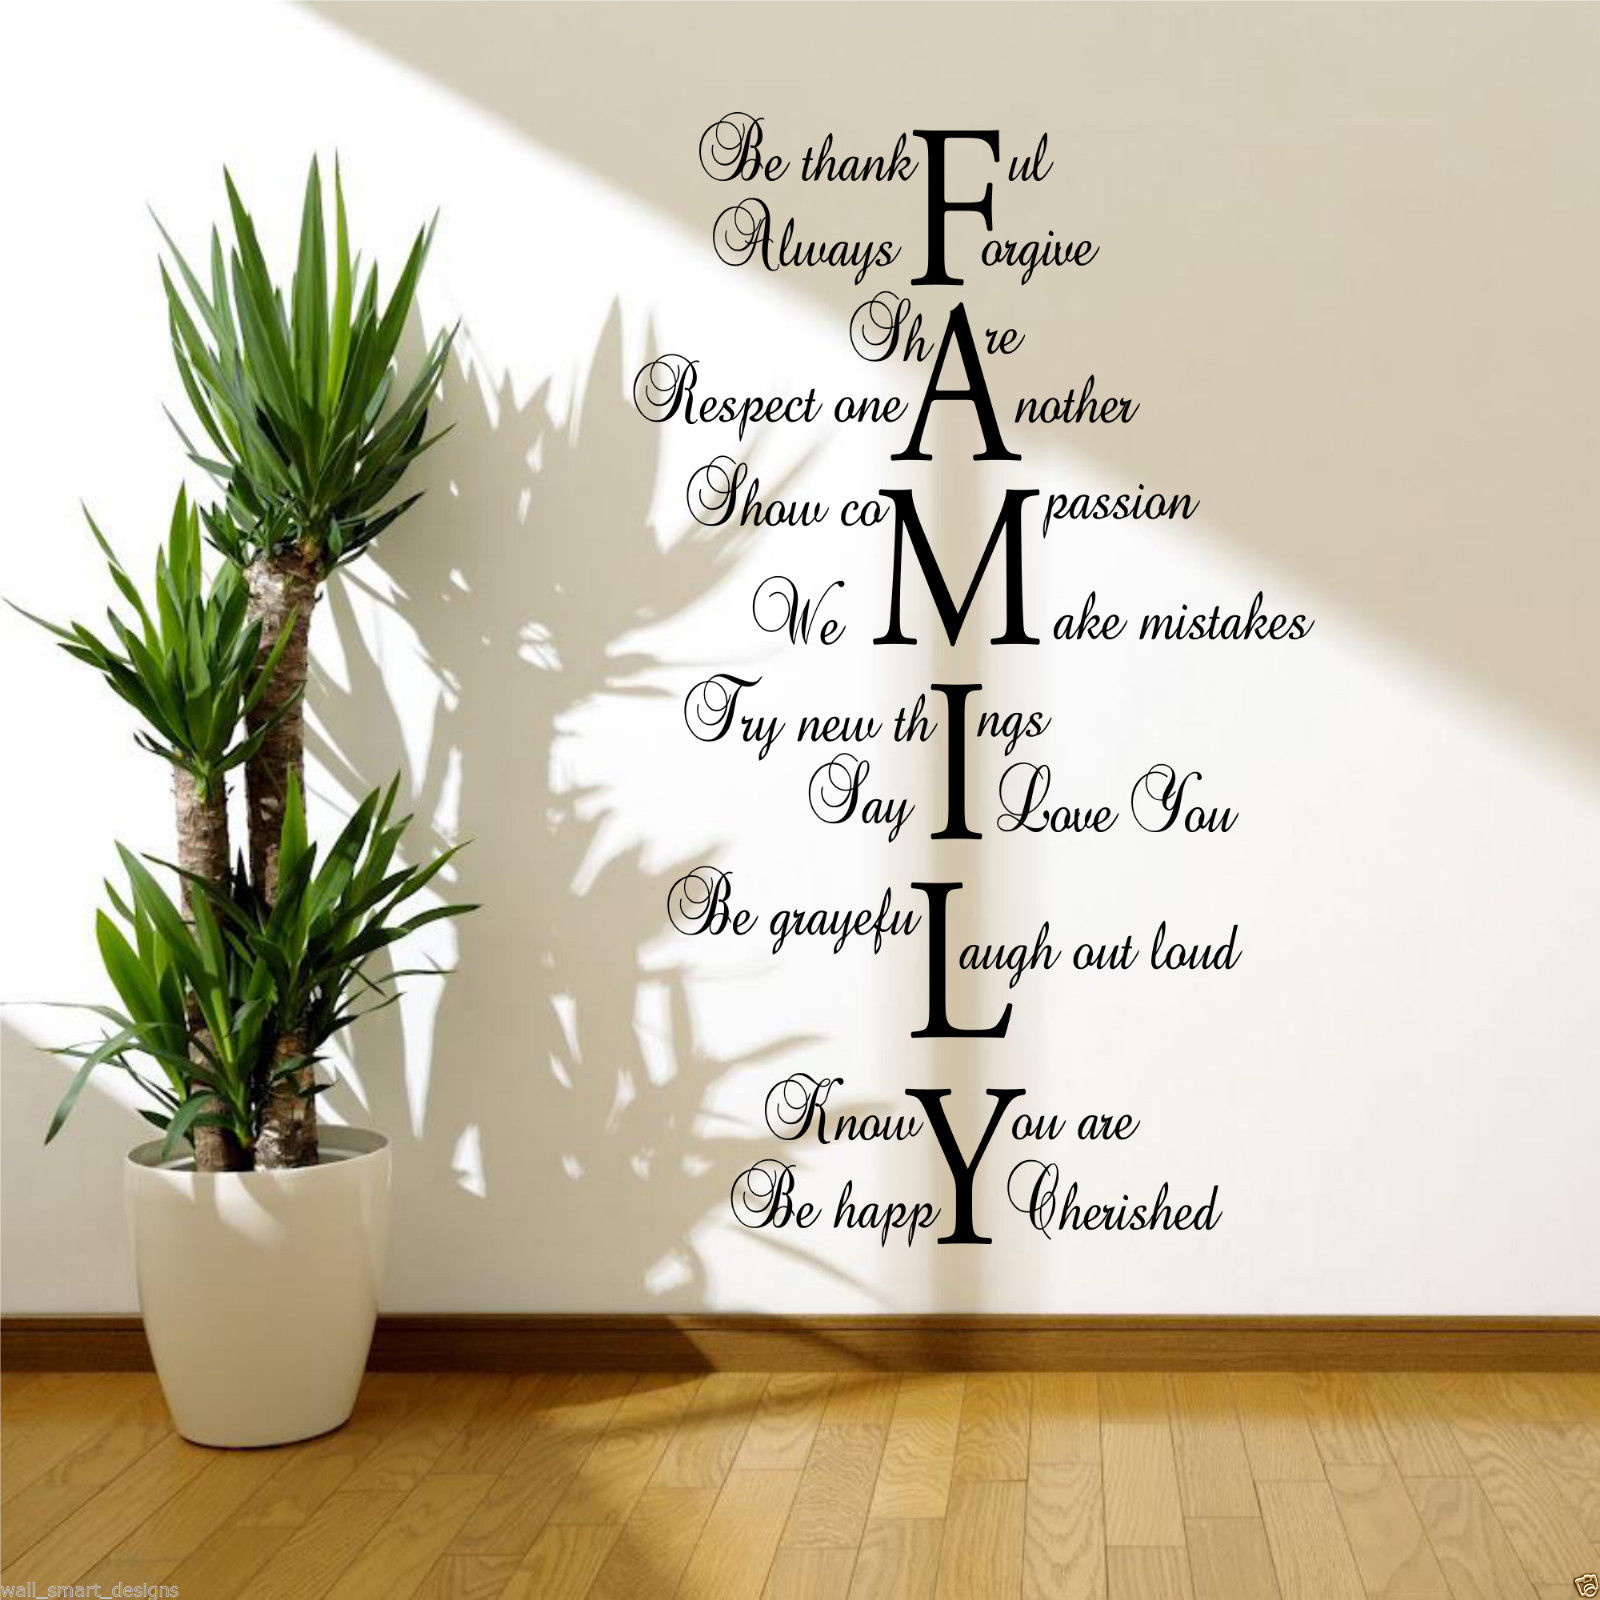 Bedroom wall art quotes - Family Love Life Wall Art Sticker Quote Room Decal Mural Transfer Sticker Wsd417